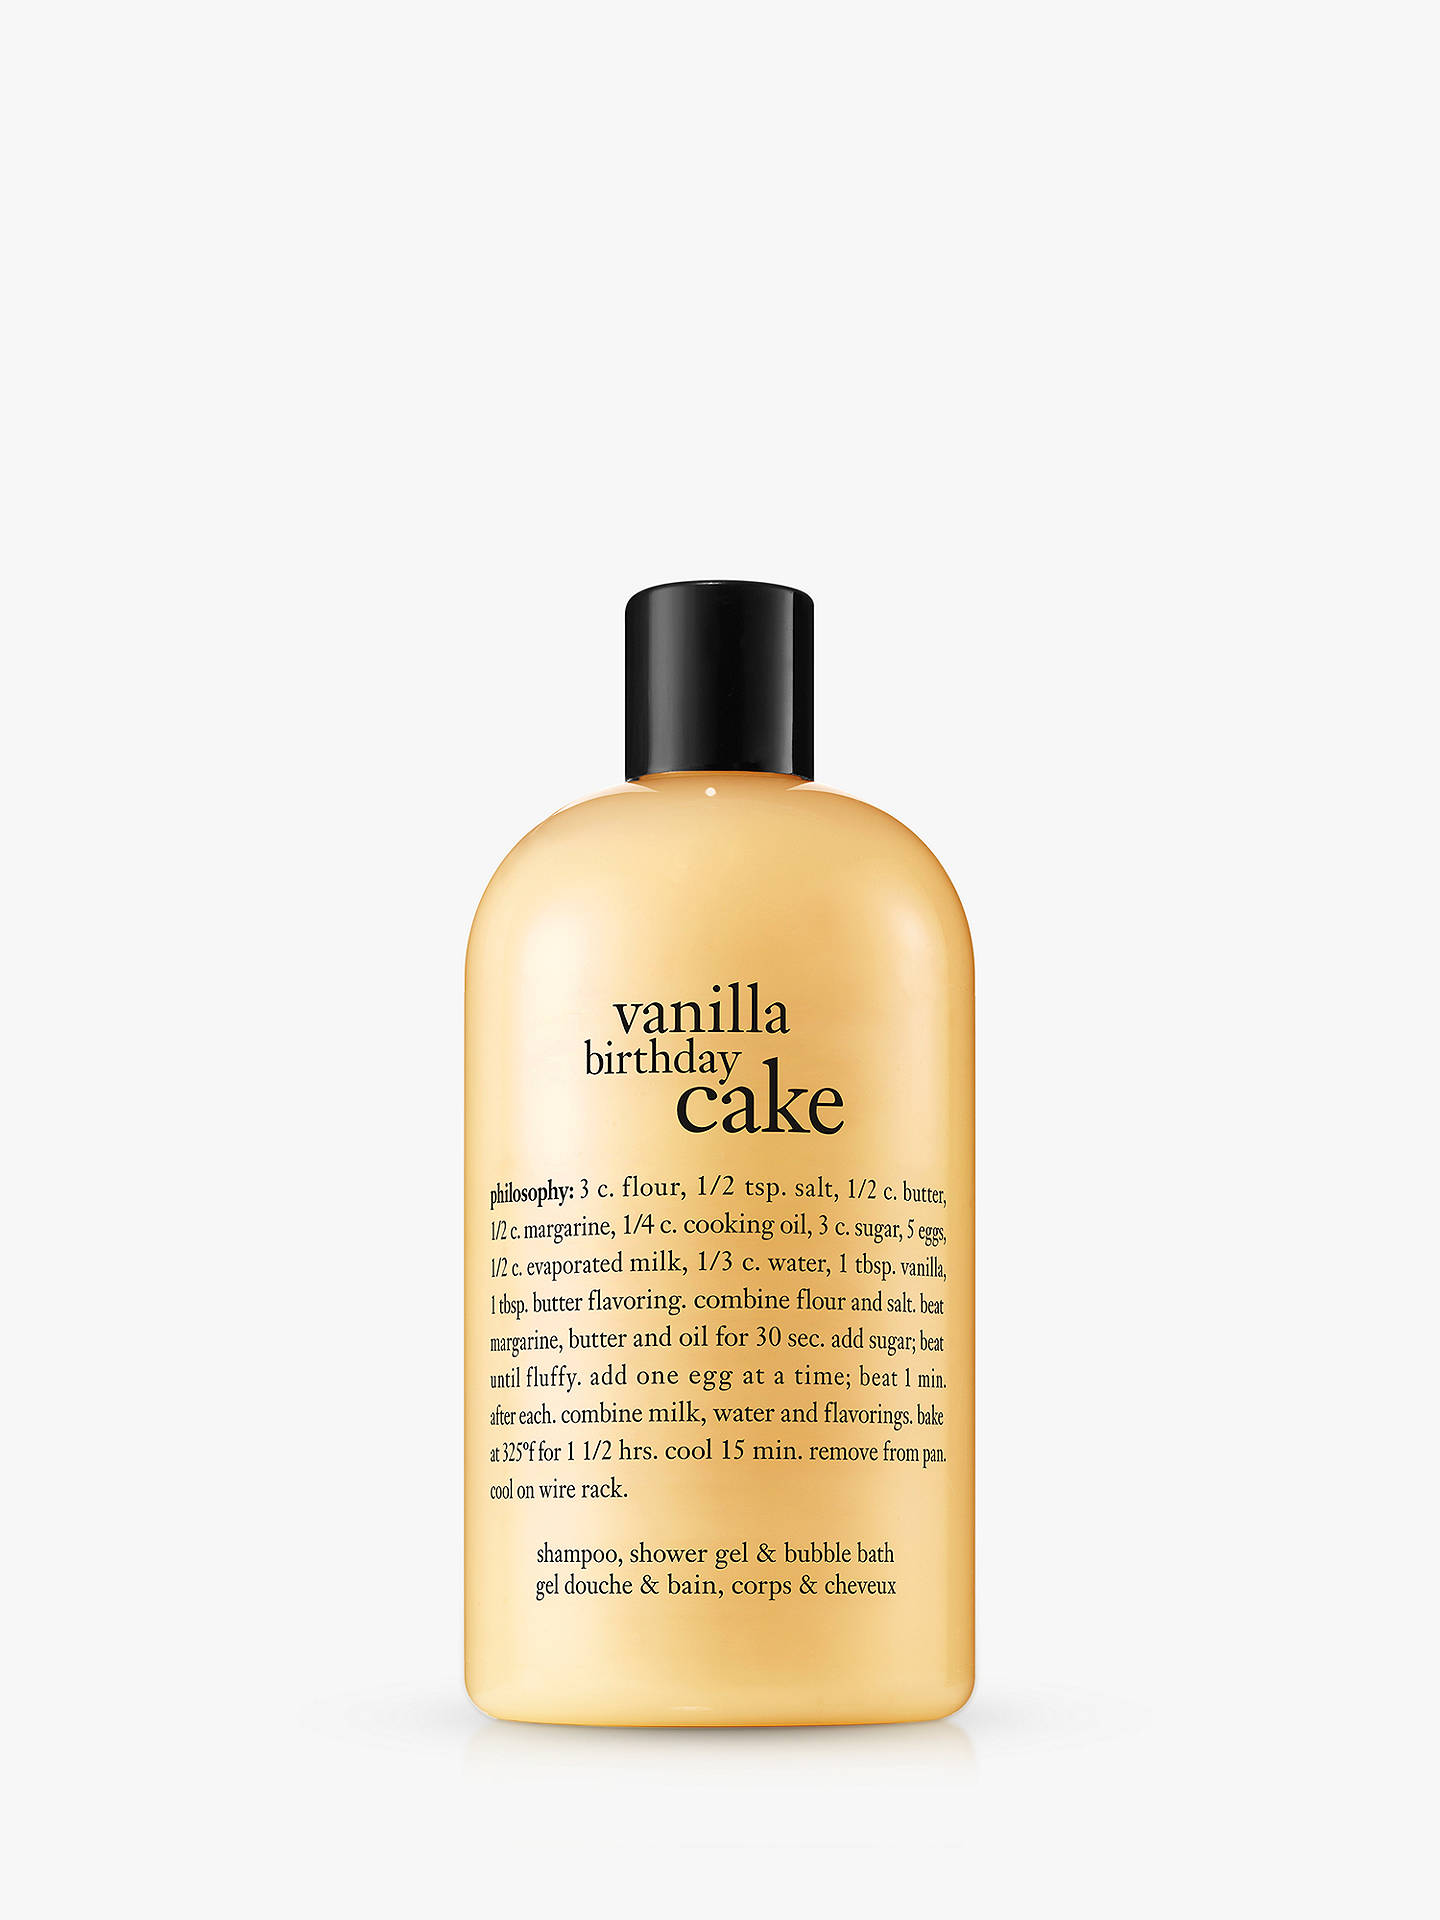 Philosophy Vanilla Birthday Cake Shampoo/Shower Gel/Bubble